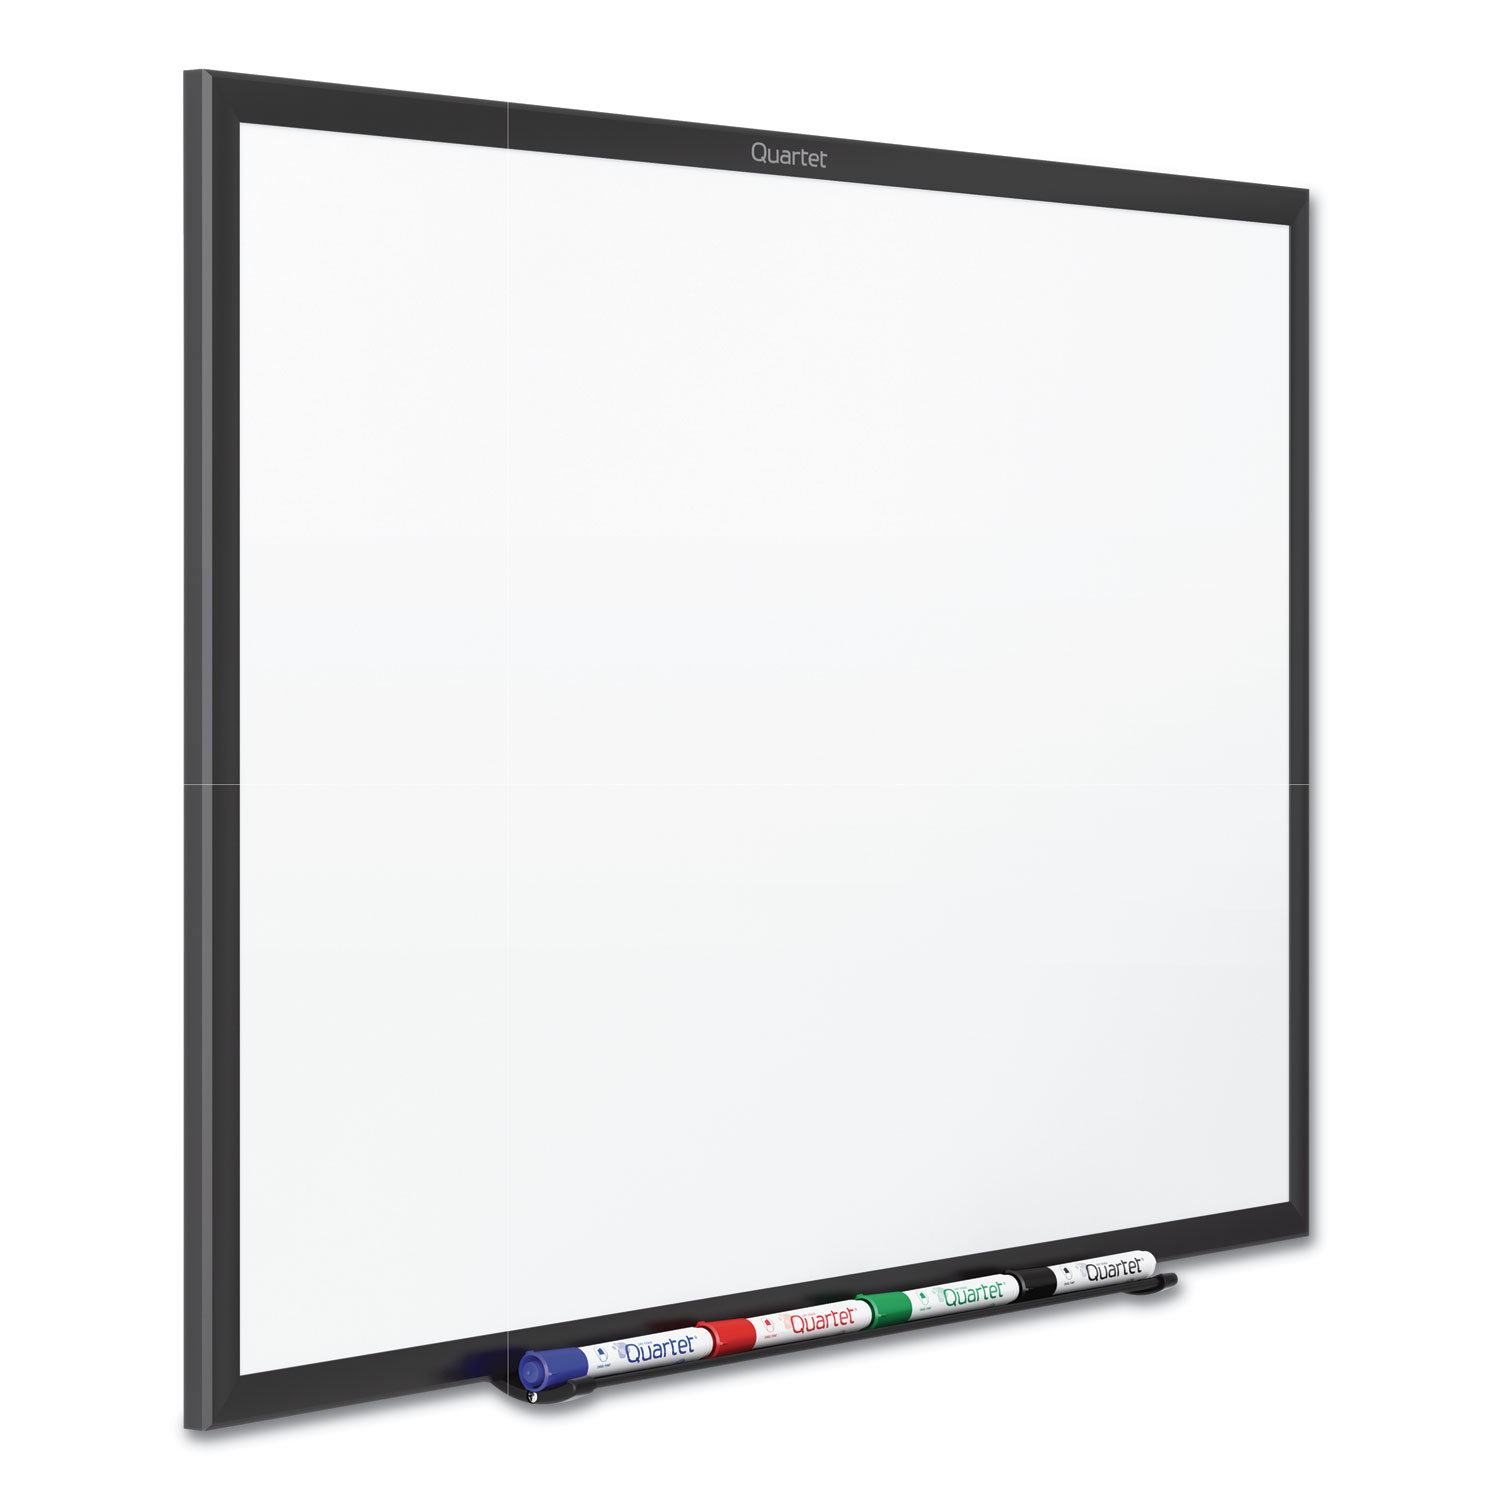 Picture of Classic Series Total Erase Dry Erase Board, 96 x 48, White Surface, Black Frame